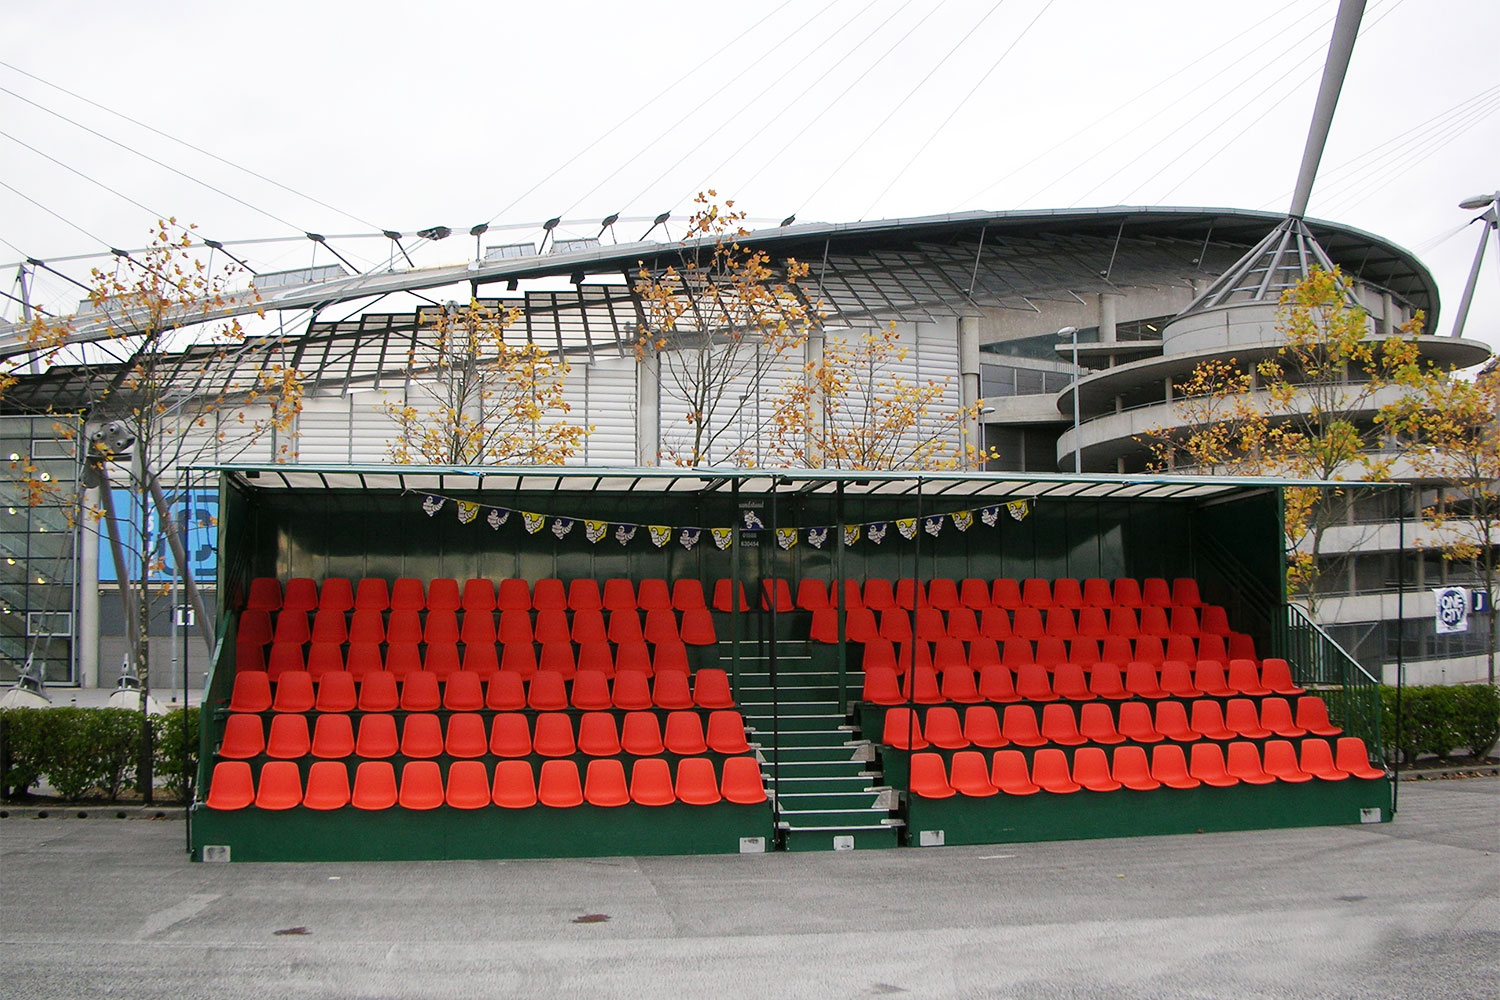 Grandstand Hire - 150 seats per block